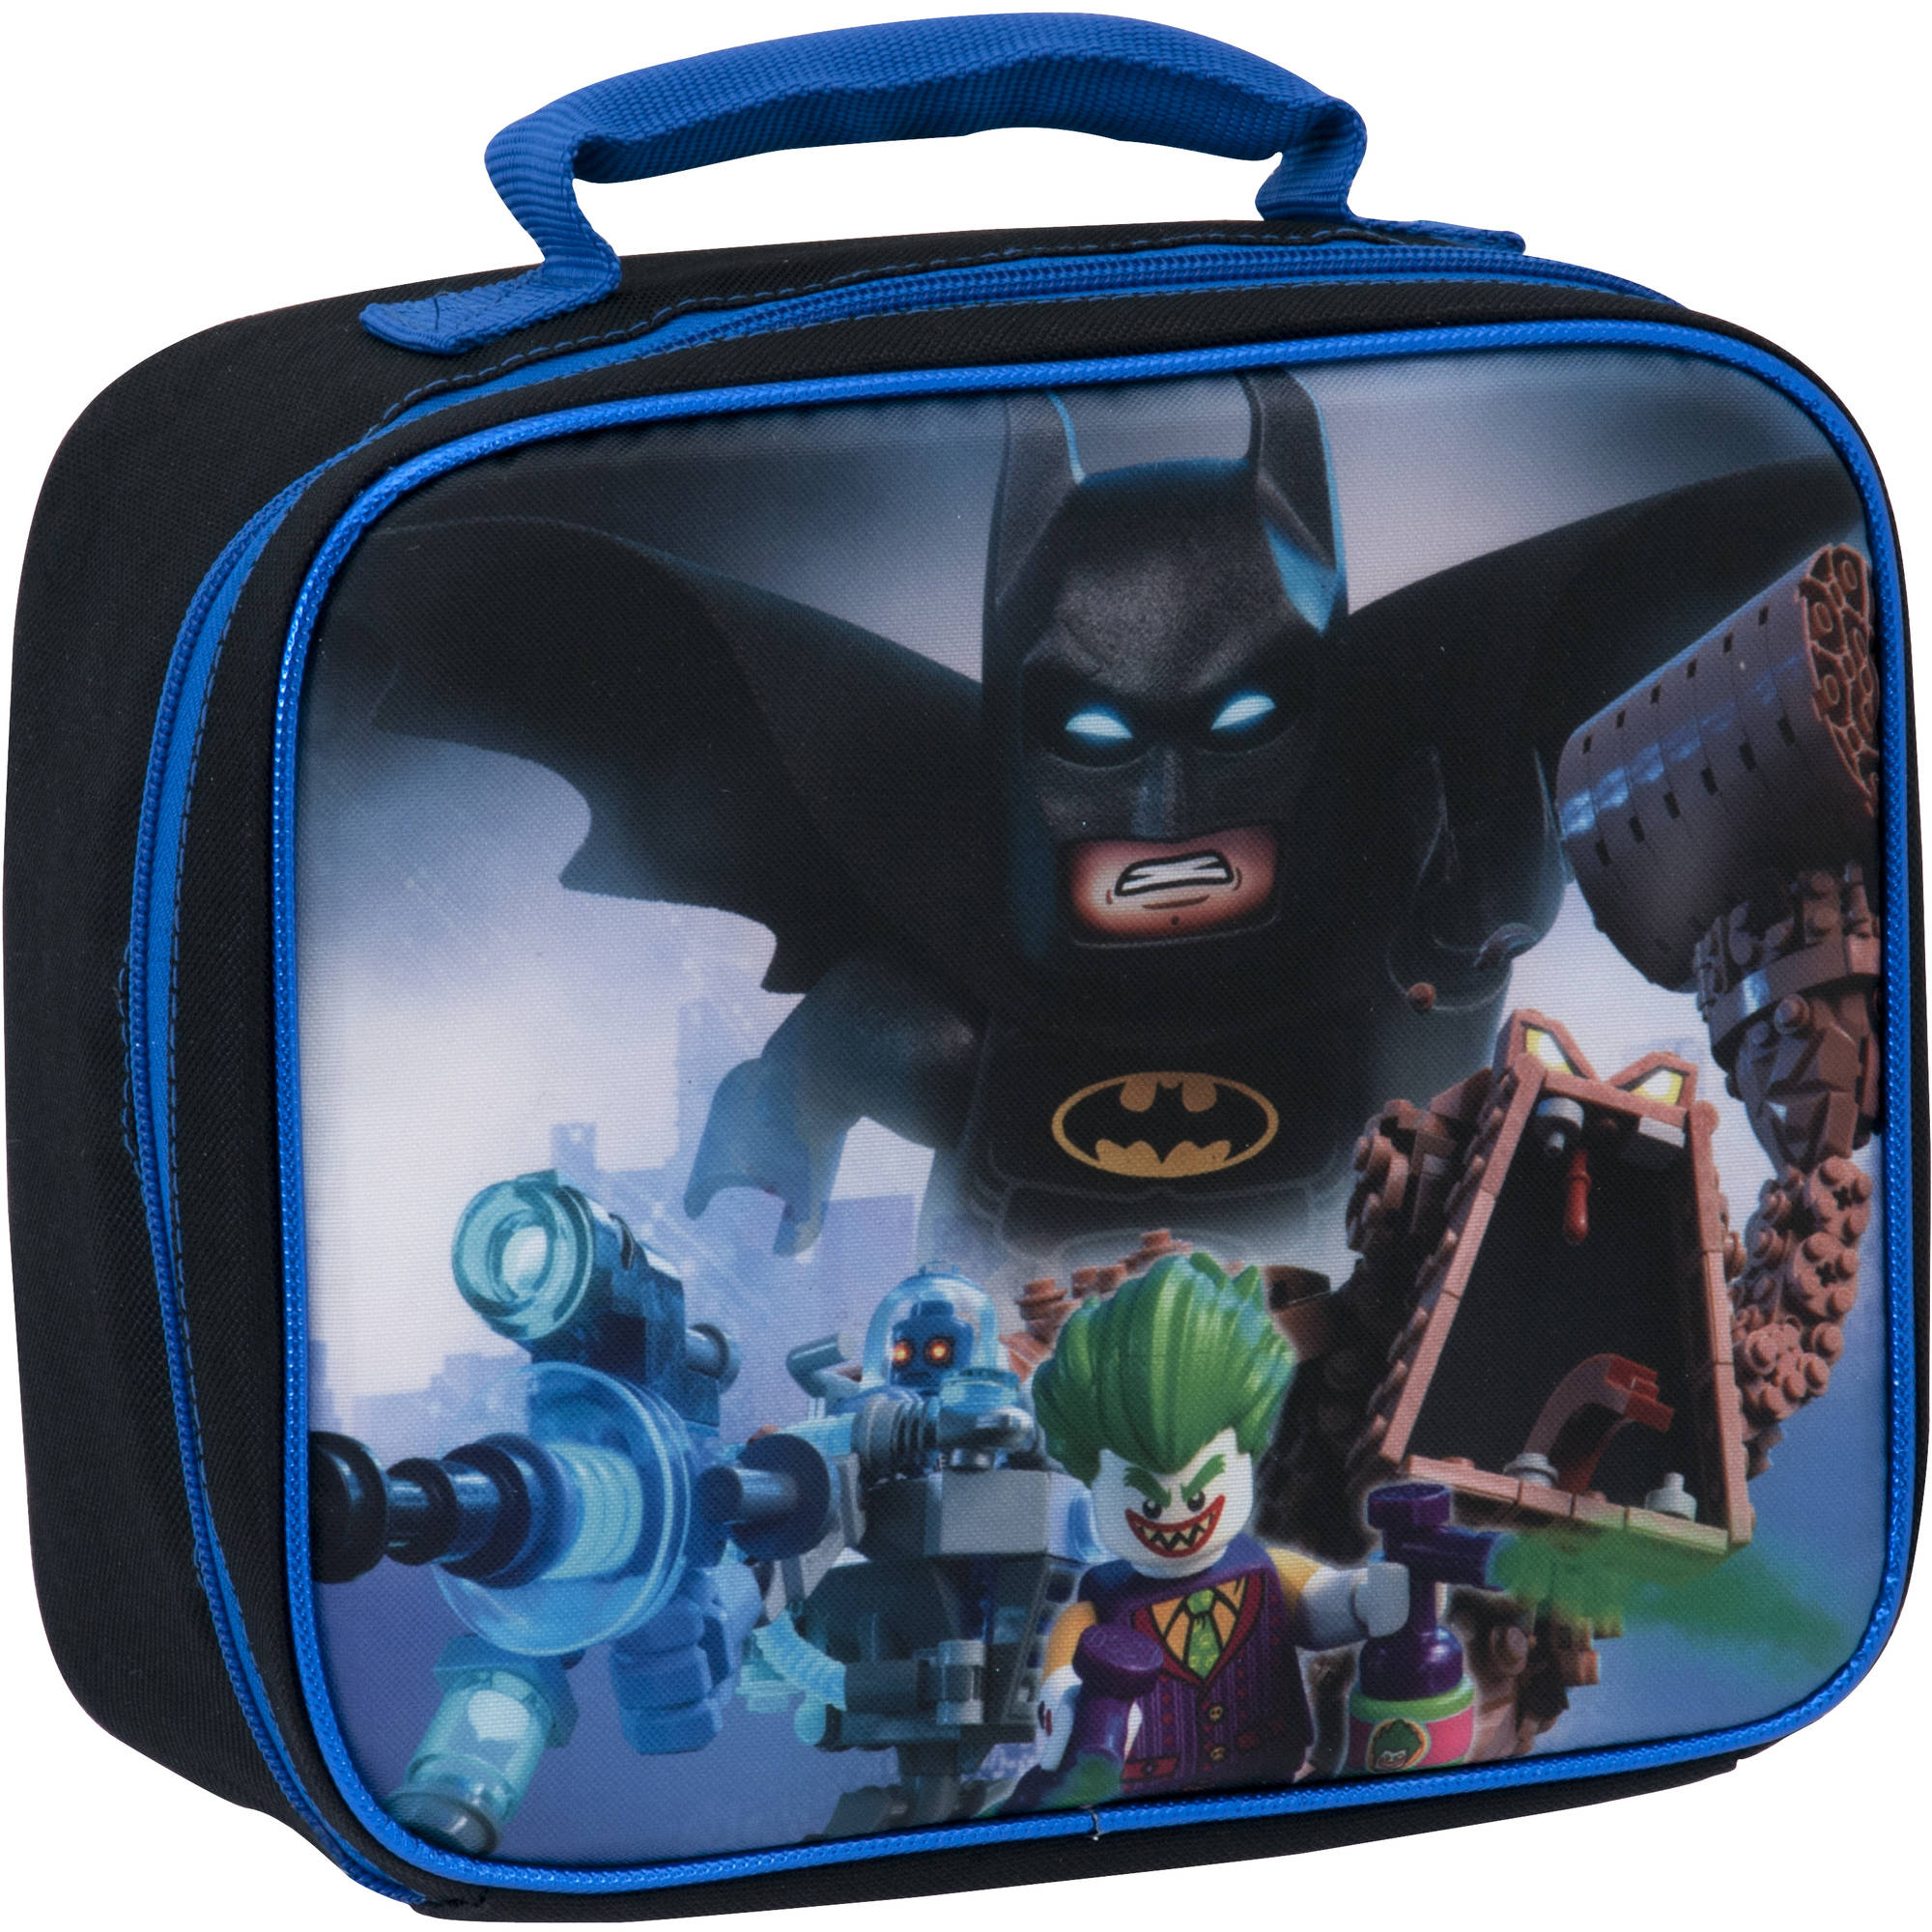 Lego Batman Insulated Double Sided Rectangular Lunch Bag